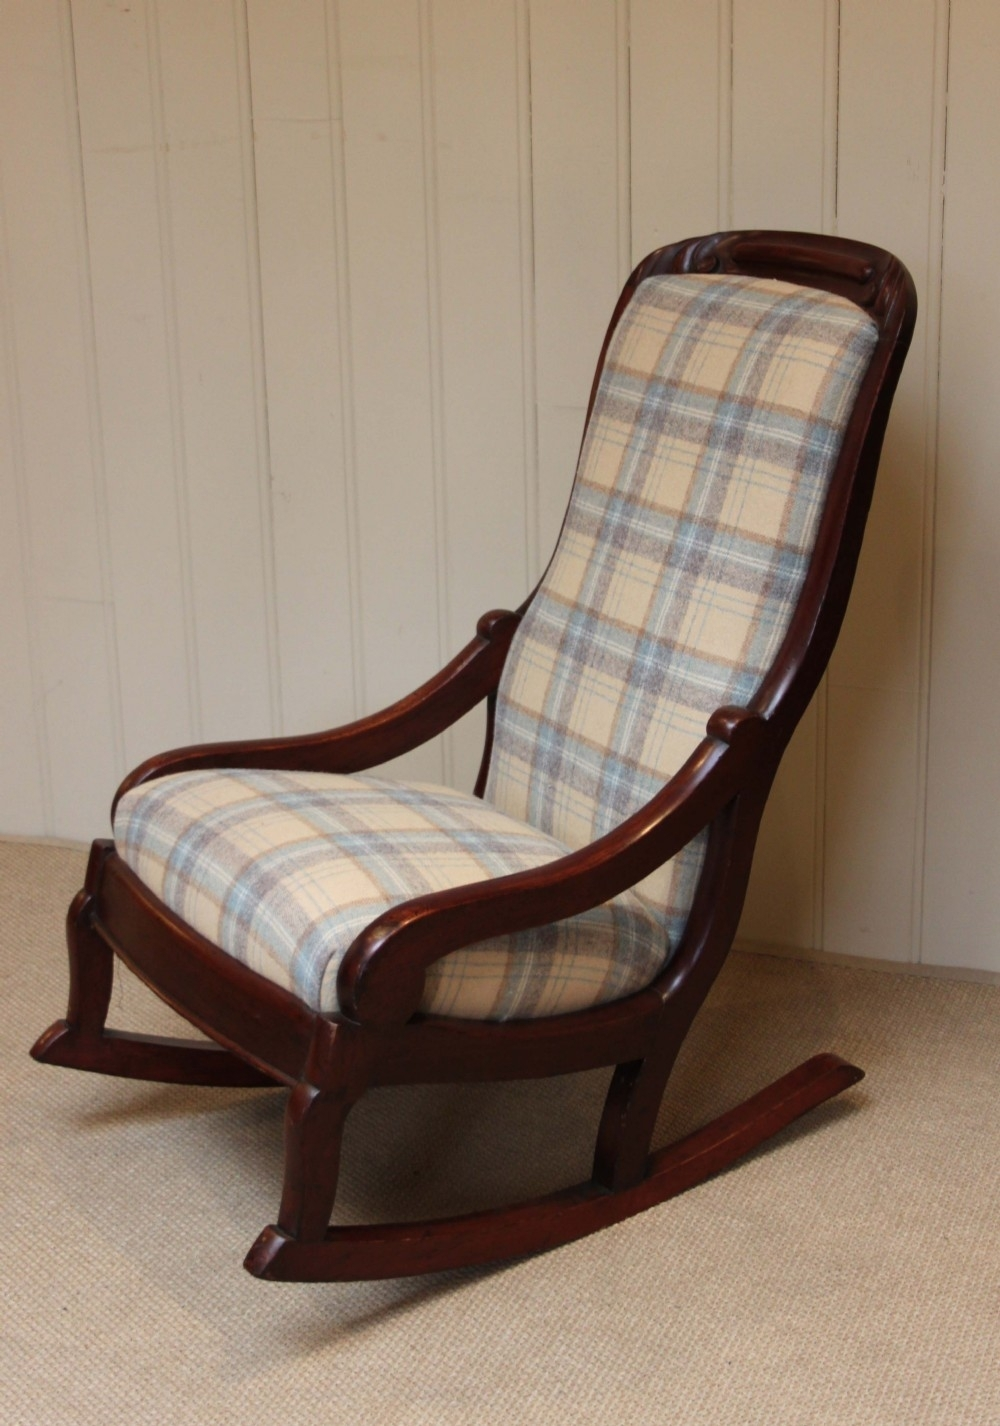 Late Victorian Upholstered Rocking Chair | 244300 | Sellingantiques Throughout Victorian Rocking Chairs (View 6 of 15)